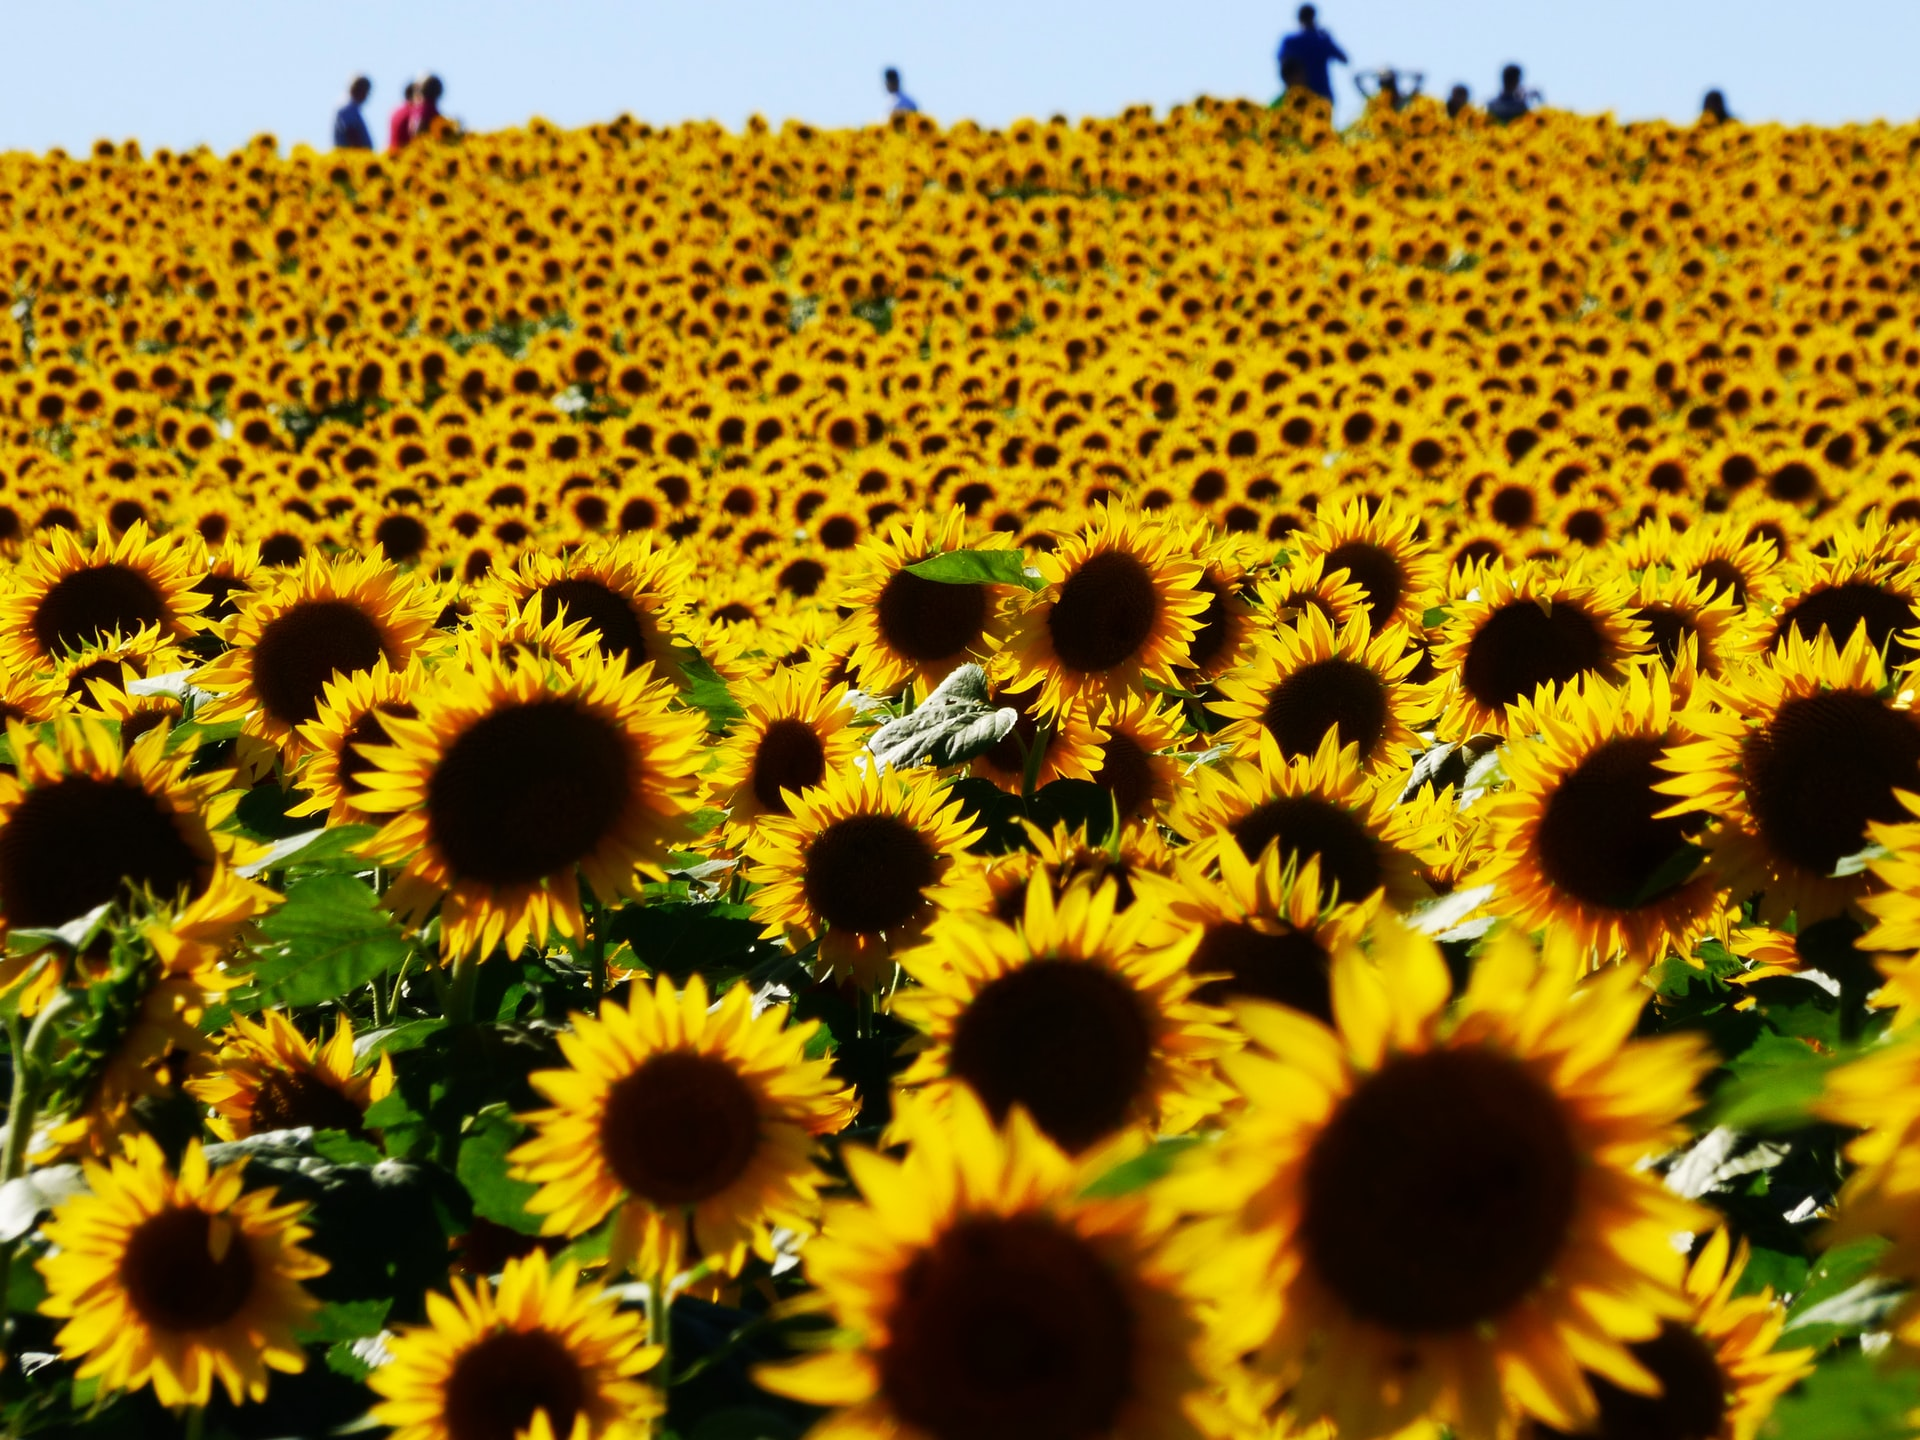 sunflowers in kansas on a road trip in the usa